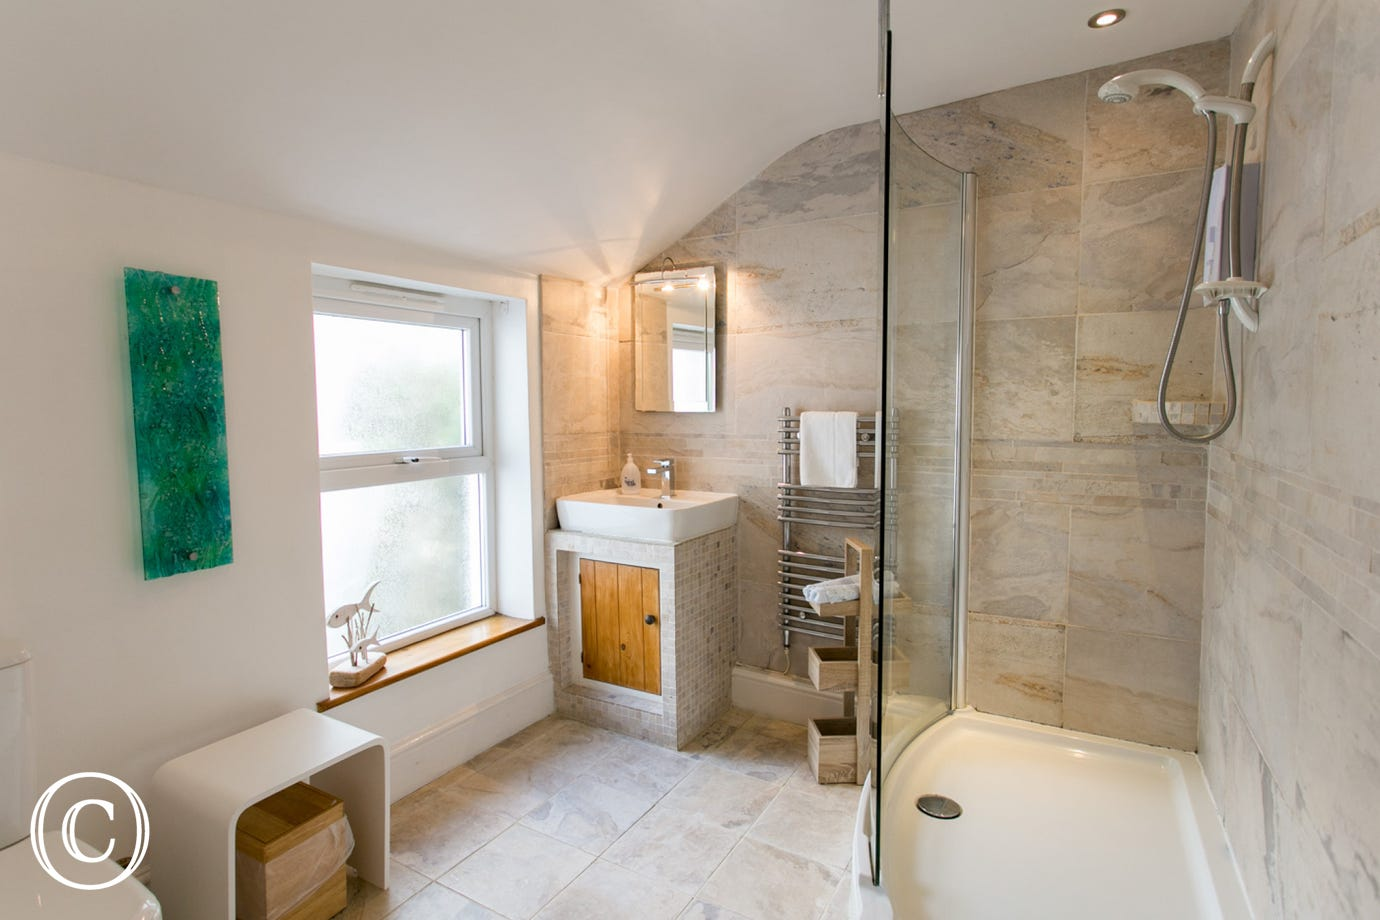 12 Bay View shower cubicle